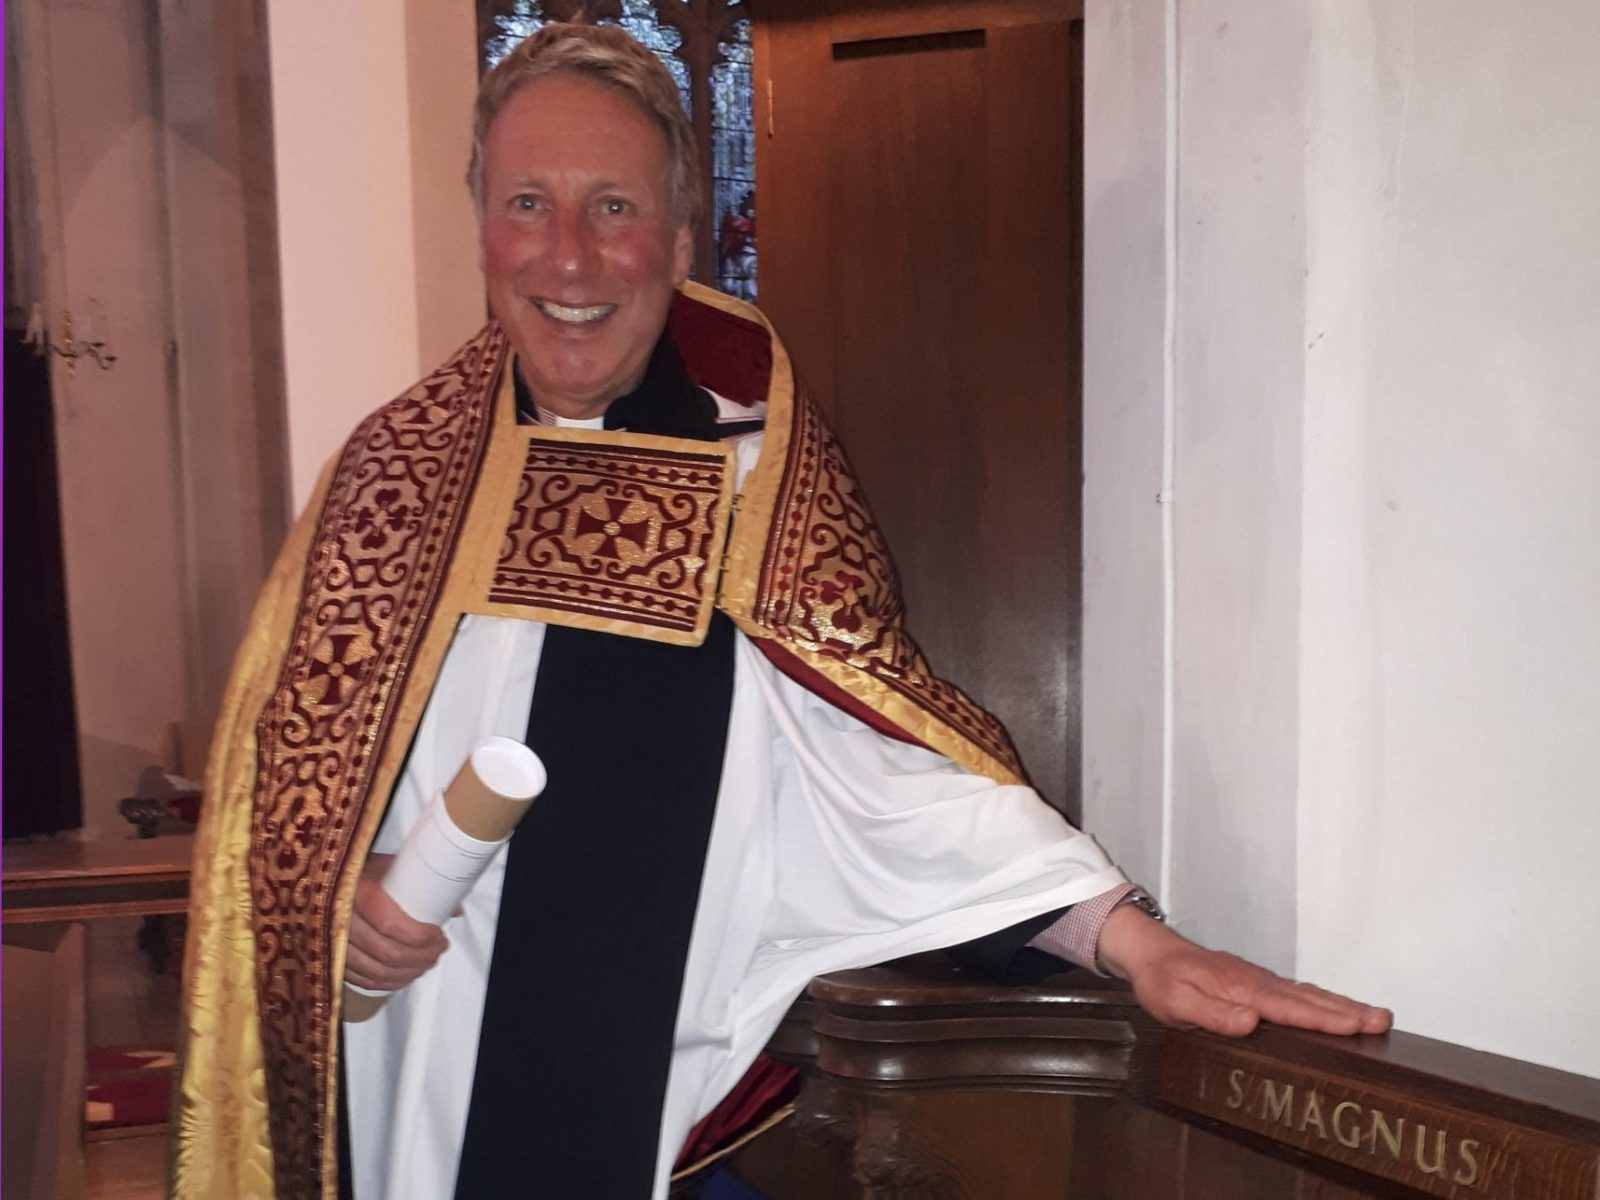 20180902 - N Brice installed as Canon landscape